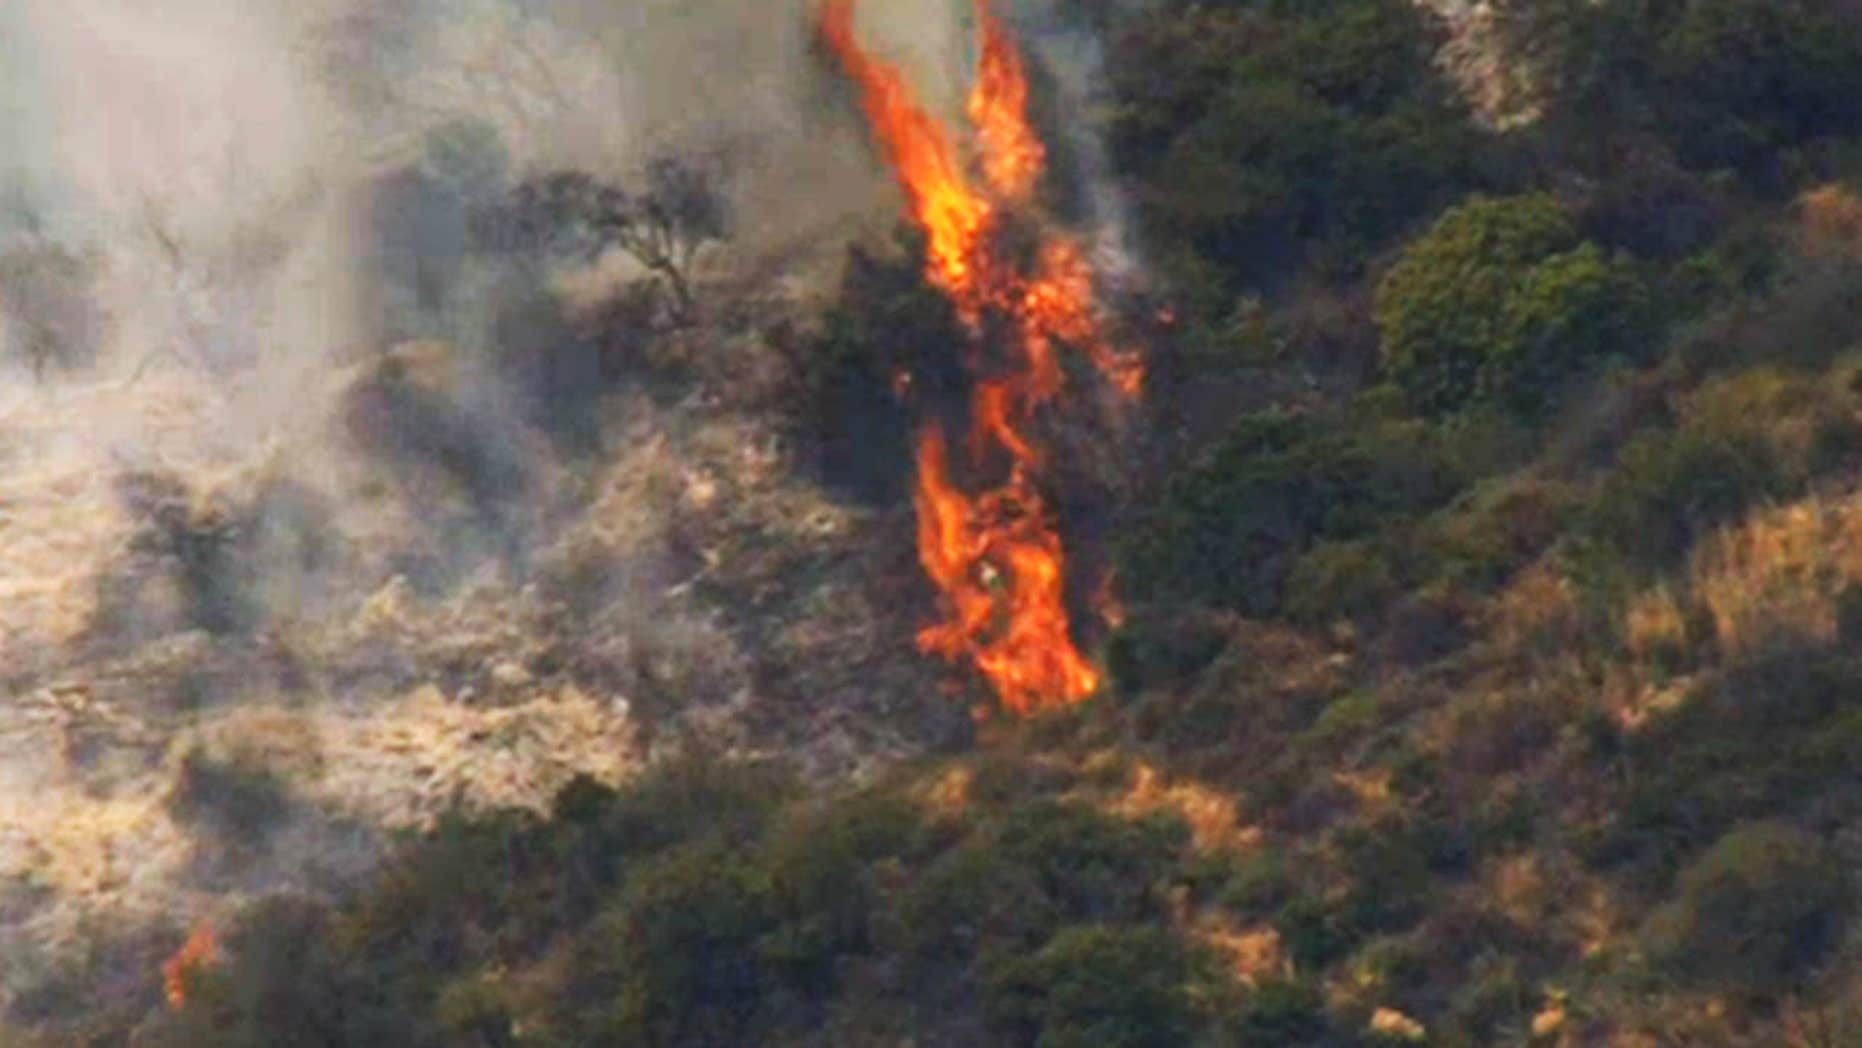 This still photo from video provided by KNBC-TV shows a hot spot from a wildfire above Mandeville Canyon Road in the Brentwood area of Los Angeles Sunday, May 28, 2017.